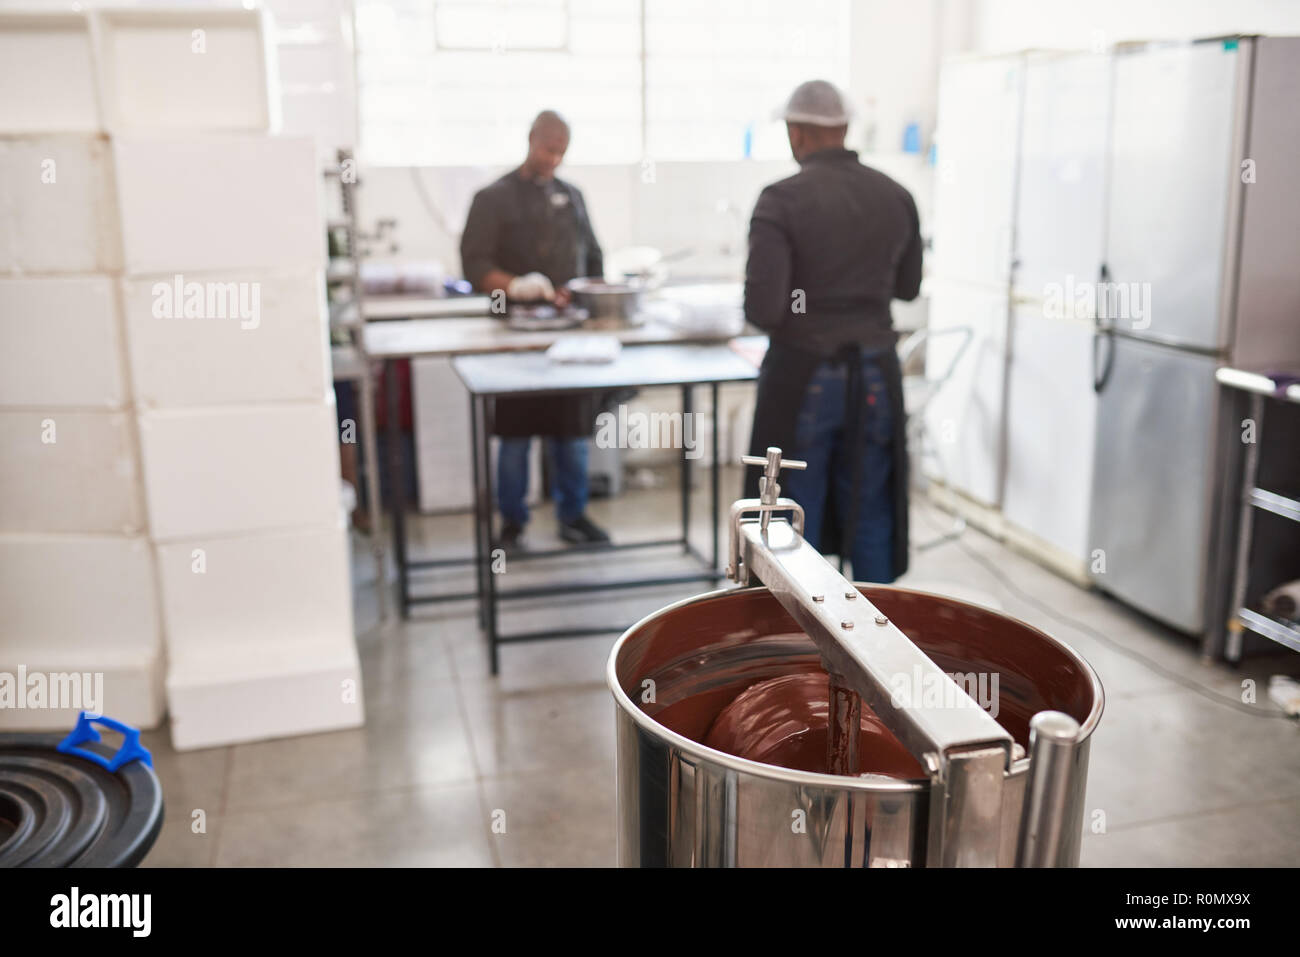 Workers preparing ingredients in a chocolate making factory - Stock Image